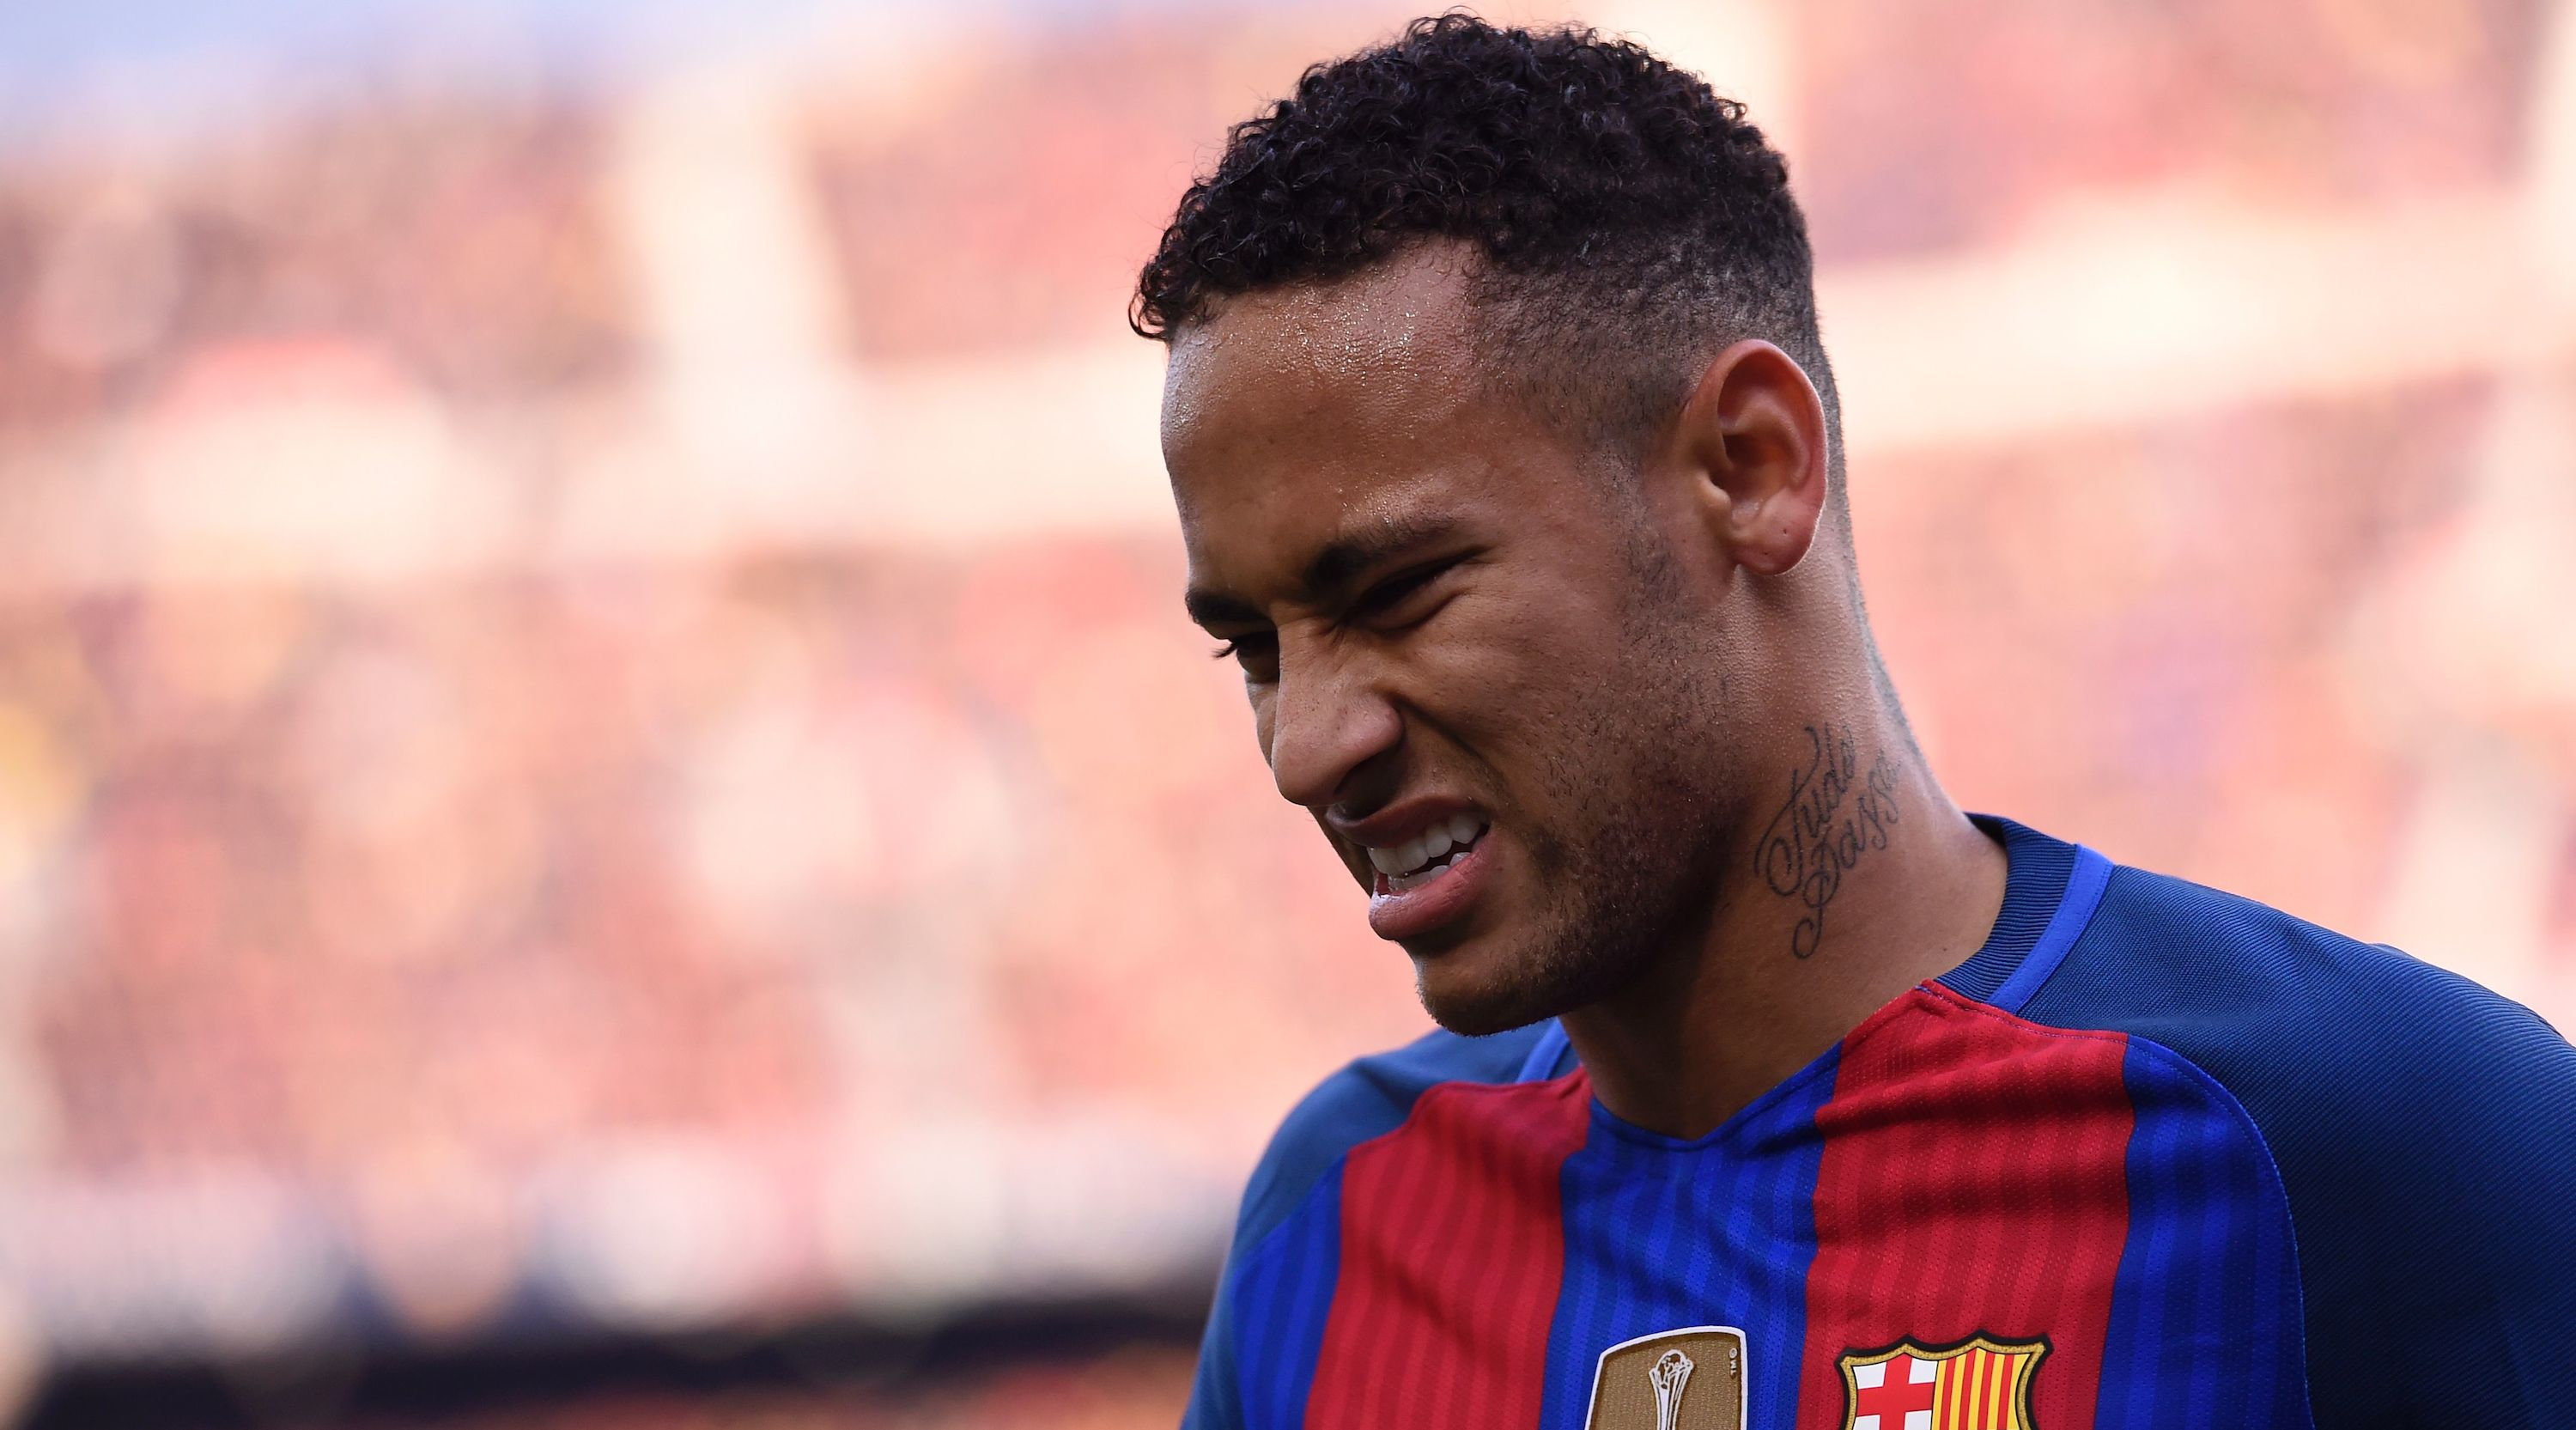 Barcelona's Brazilian forward Neymar reacts after a collision with Real Madrid's defender Dani Carvajal during the Spanish league football match FC Barcelona vs Real Madrid CF at the Camp Nou stadium in Barcelona on December 3, 2016. / AFP / JOSEP LAGO (Photo credit should read JOSEP LAGO/AFP/Getty Images)